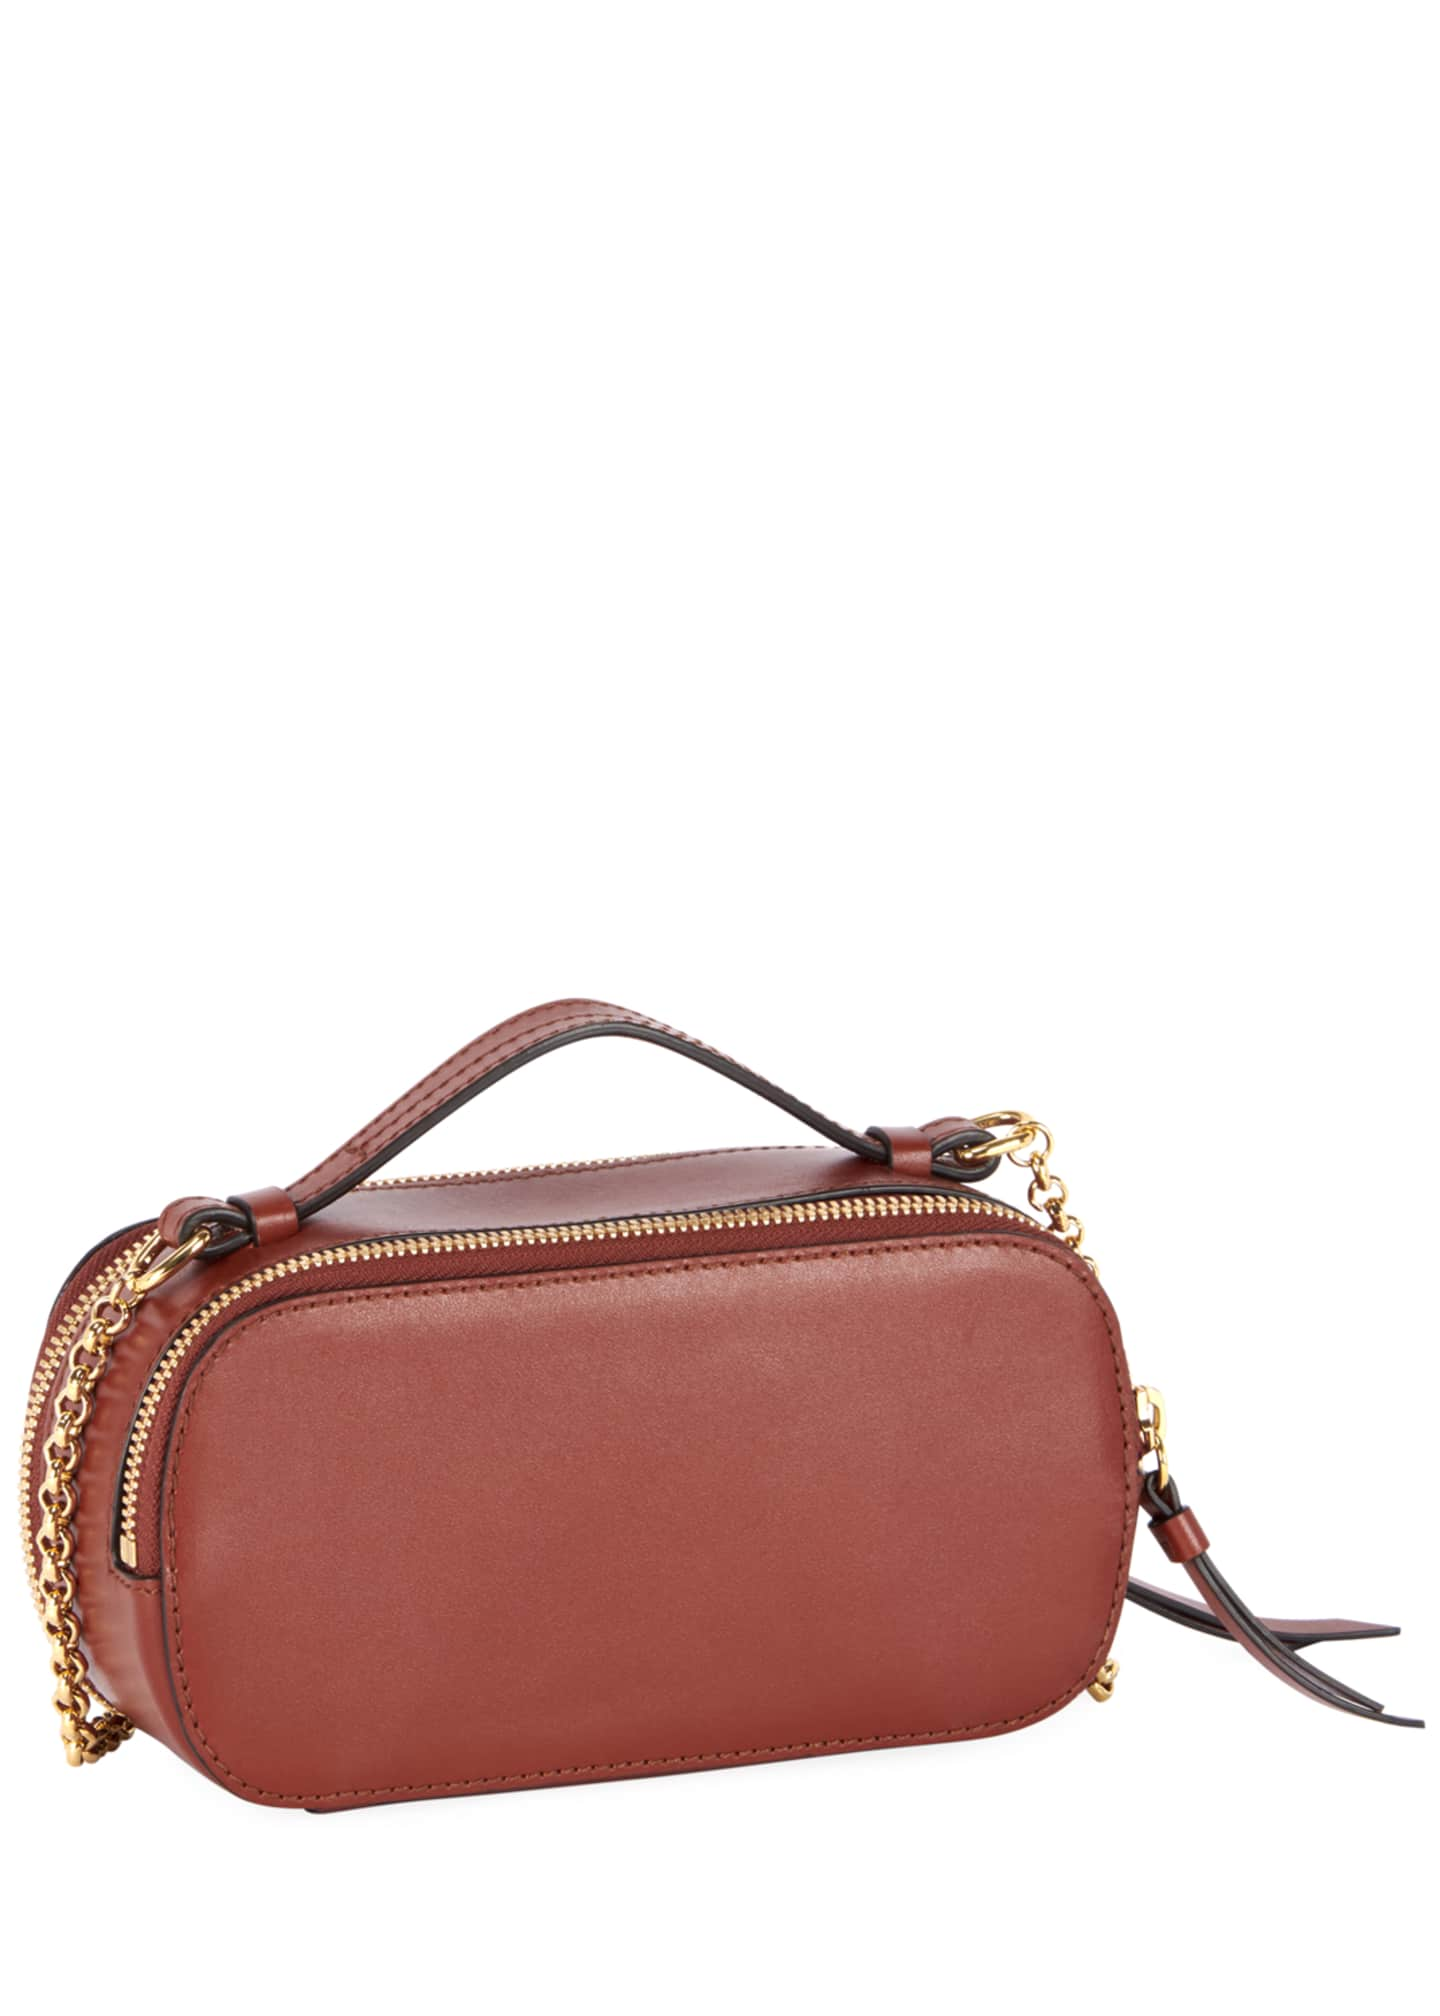 Image 3 of 3: C Multi Compact Crossbody Bag